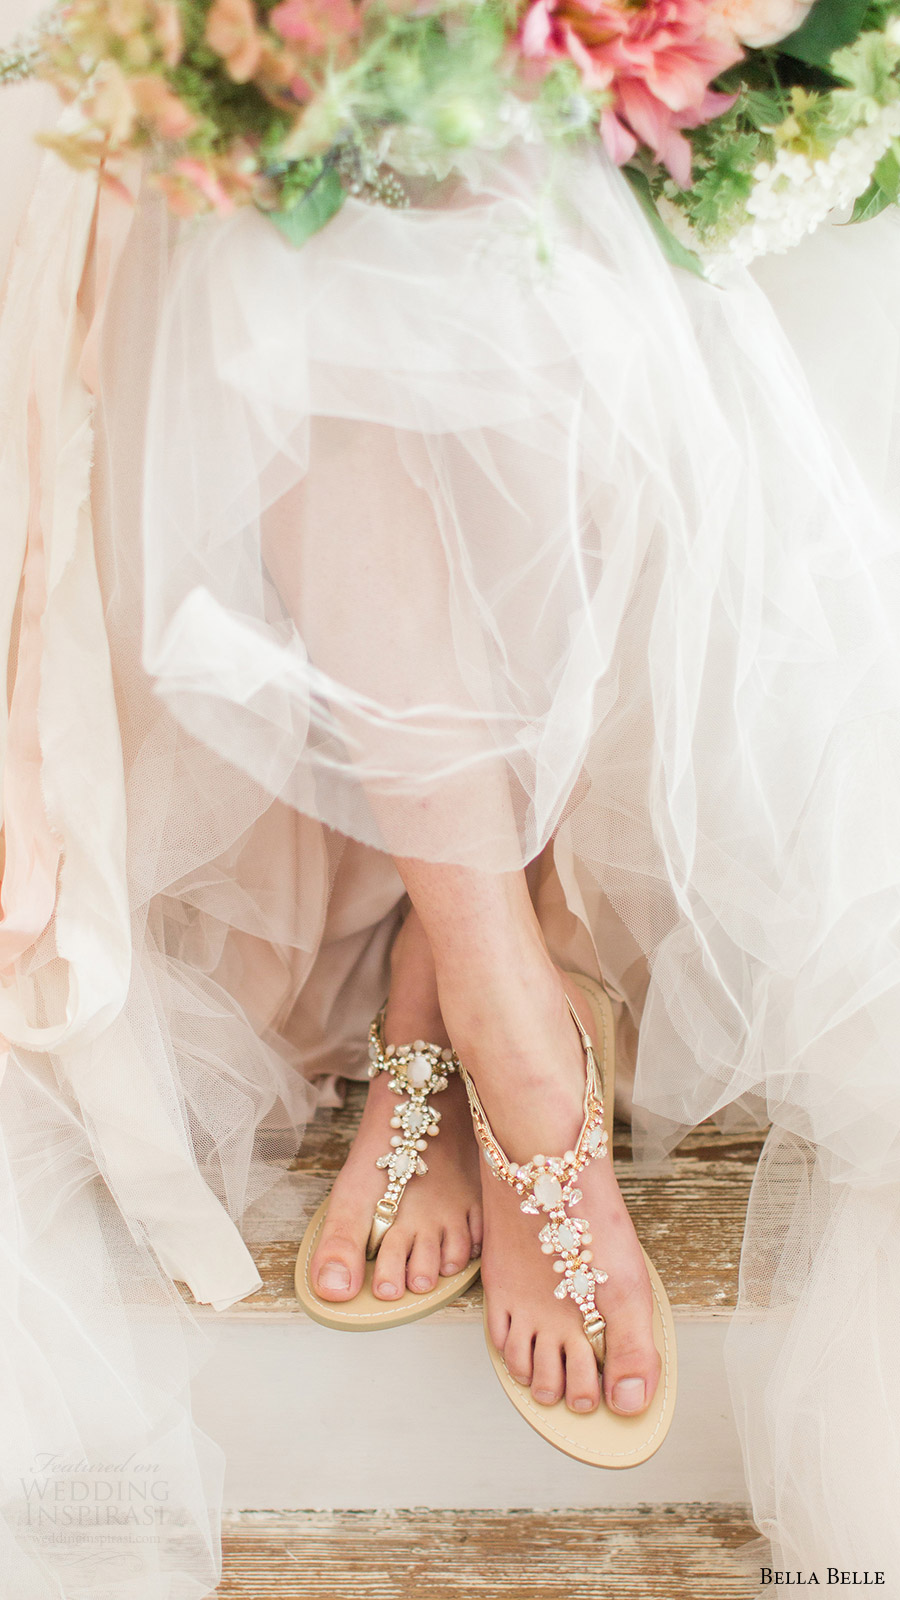 bella belle bridal shoes 2016 luna wedding sandals for destination weddings